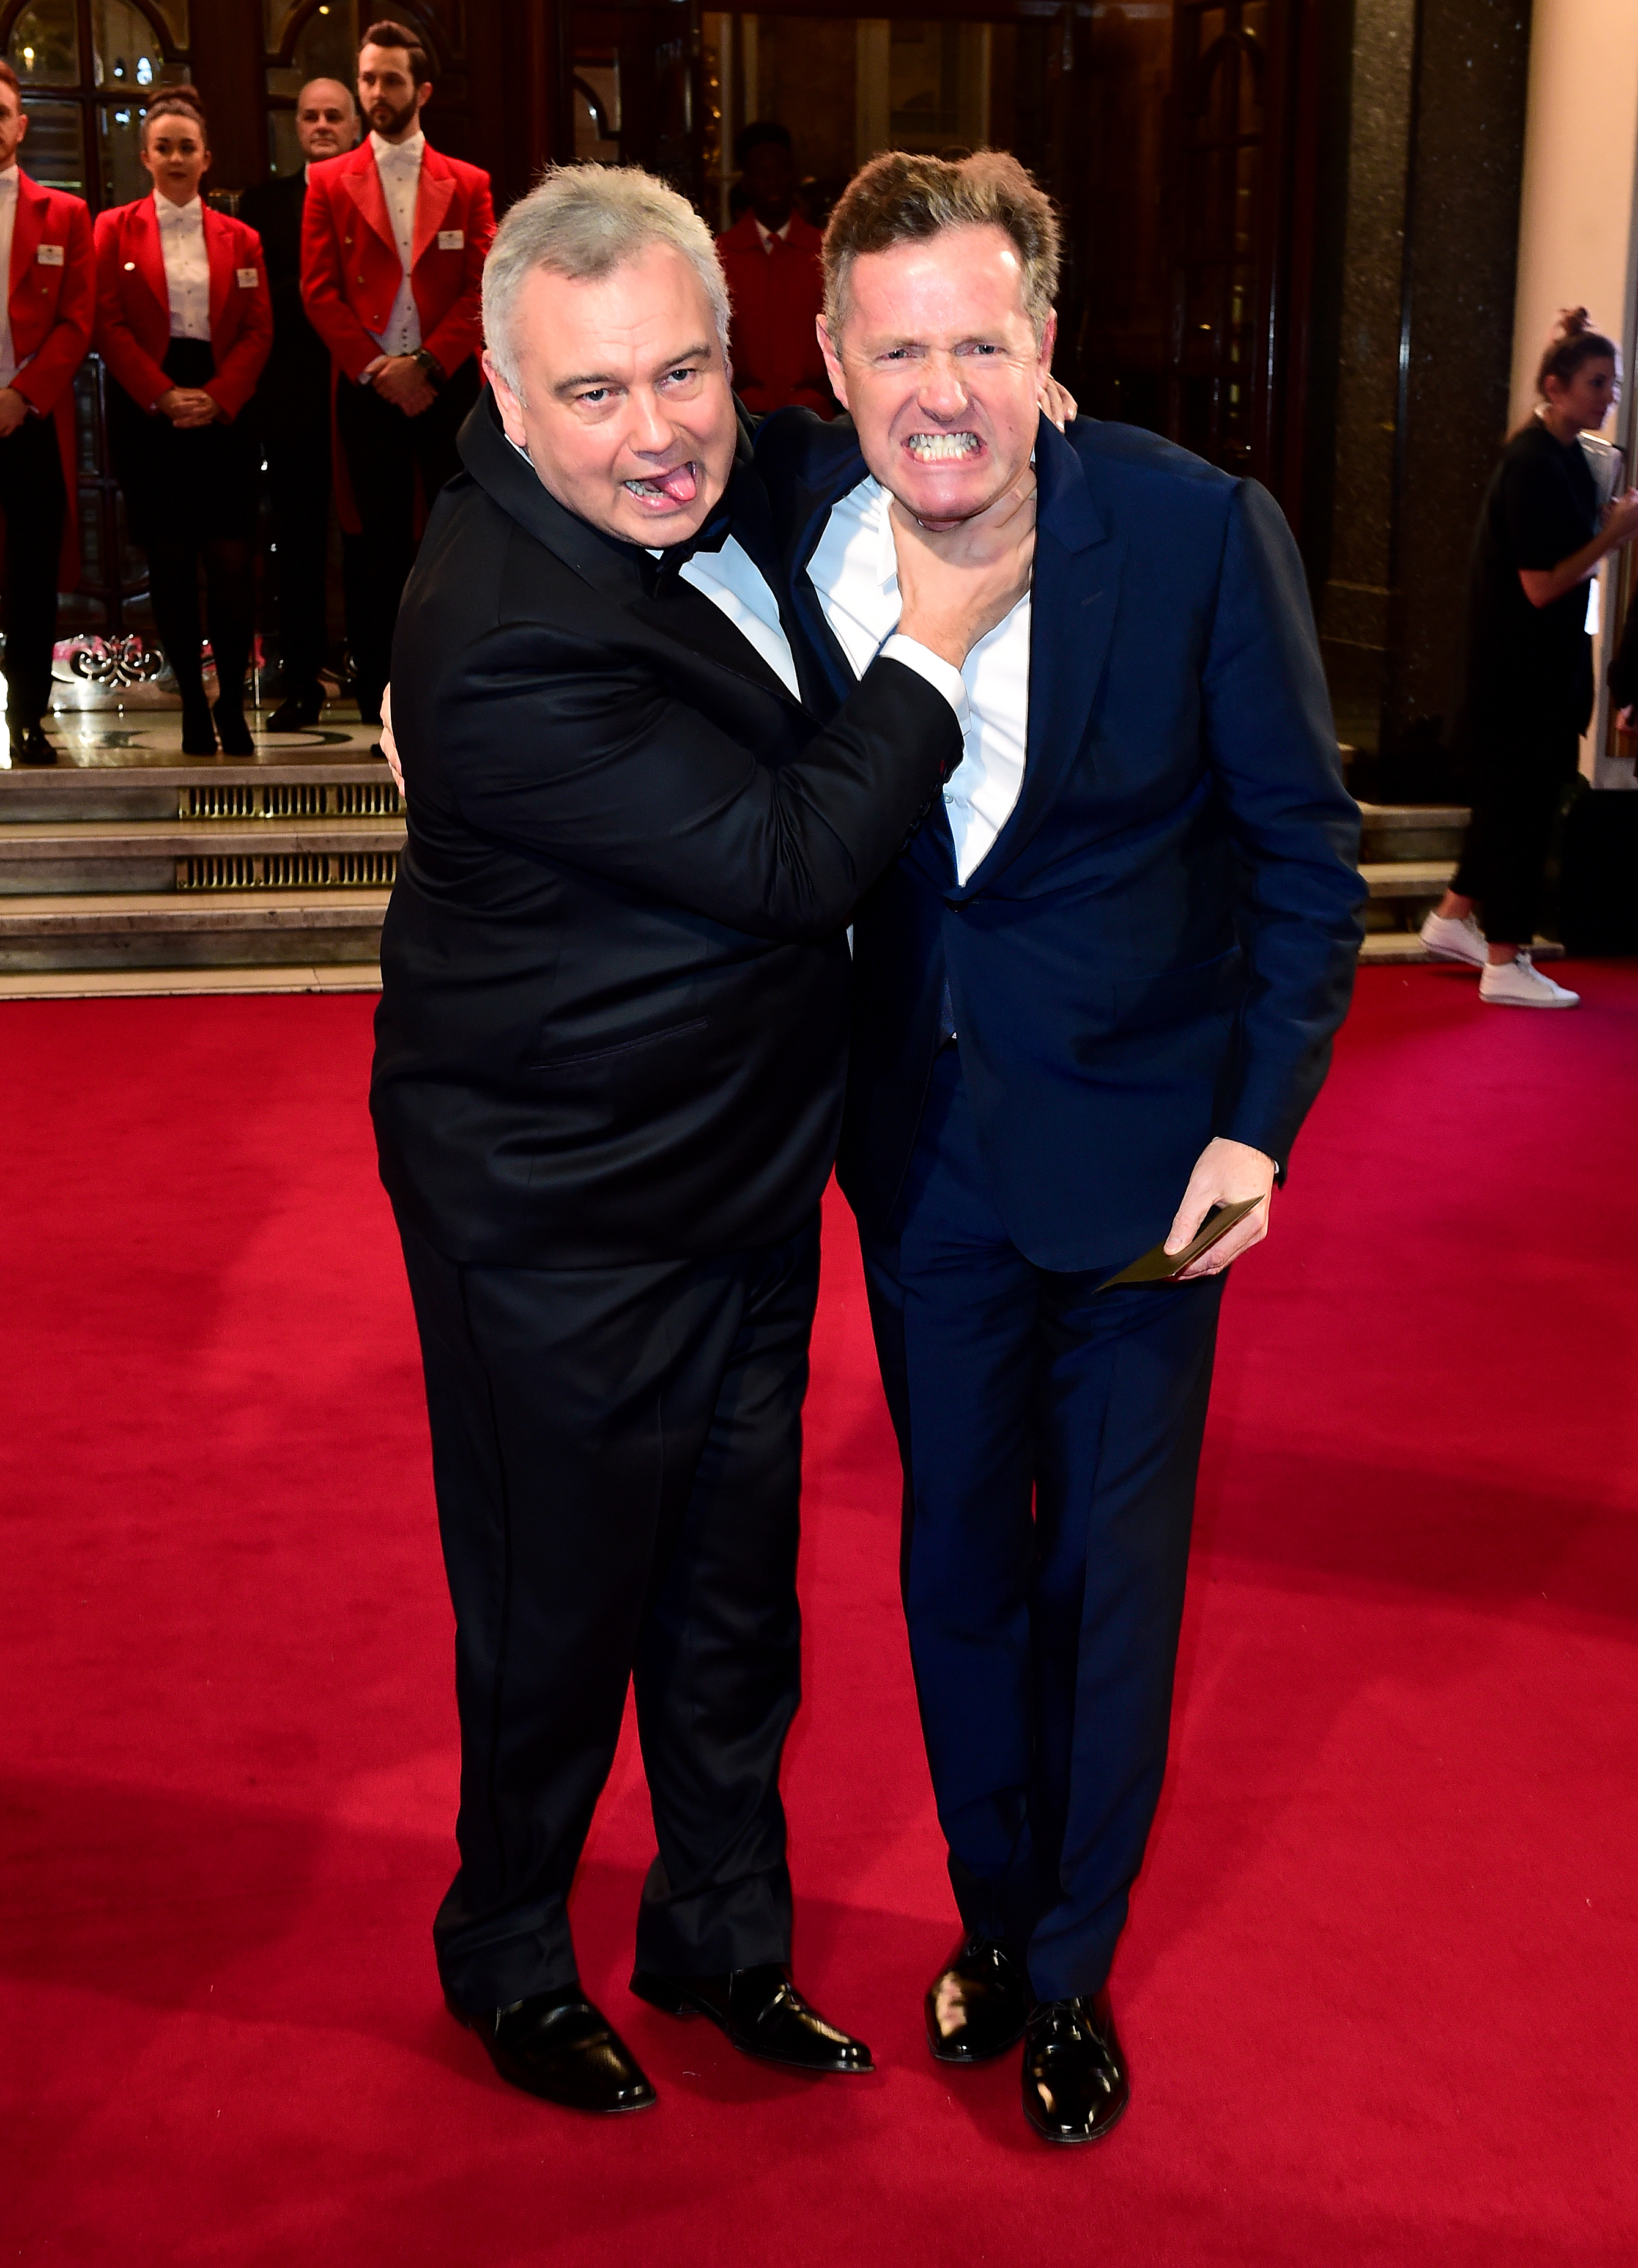 Eamonn Holmes and Piers Morgan (right) attending the ITV Gala at the London Palladium. PRESS ASSOCIATION Photo. Picture date: Thursday November 19, 2015. See PA story SHOWBIZ ITV. Photo credit should read: Ian West/PA Wire